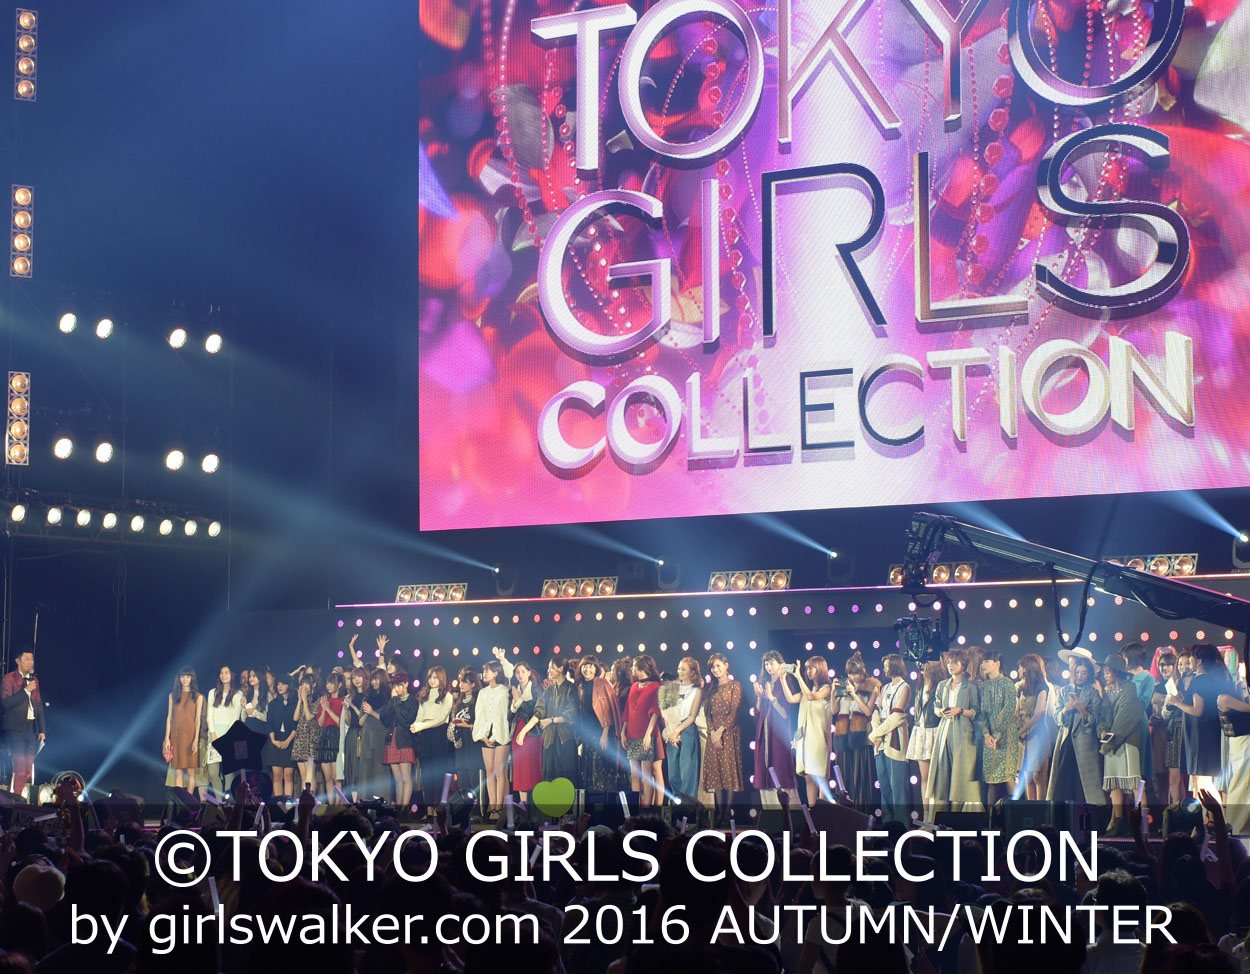 cTOKYO GIRLS COLLECTION by girlswaker.com 2016 AUTUMN/WINTER